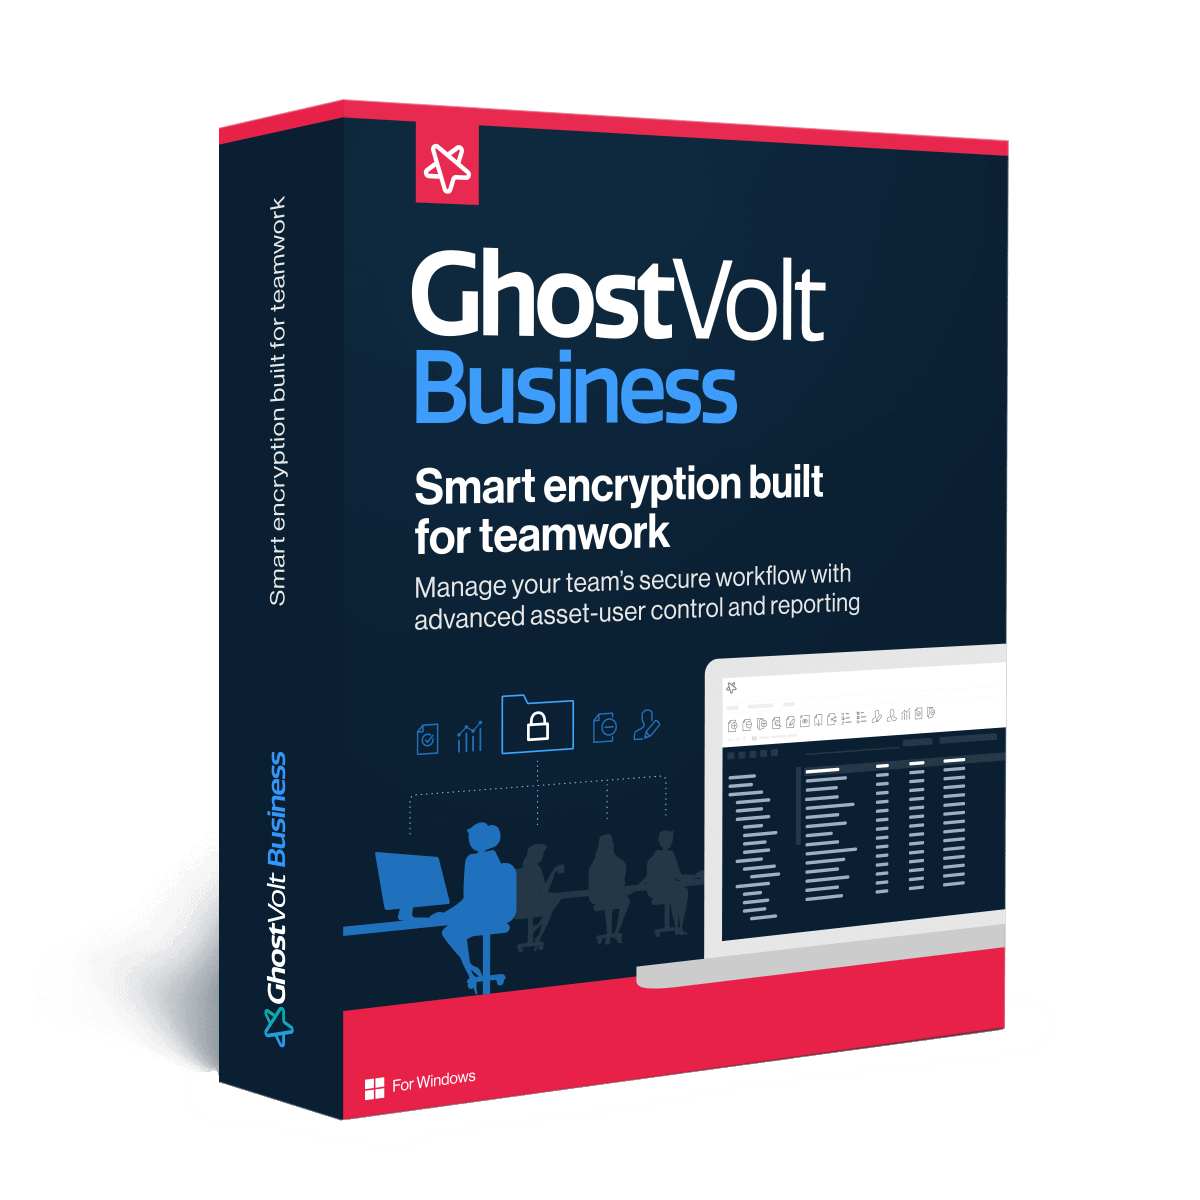 GhostVolt Business